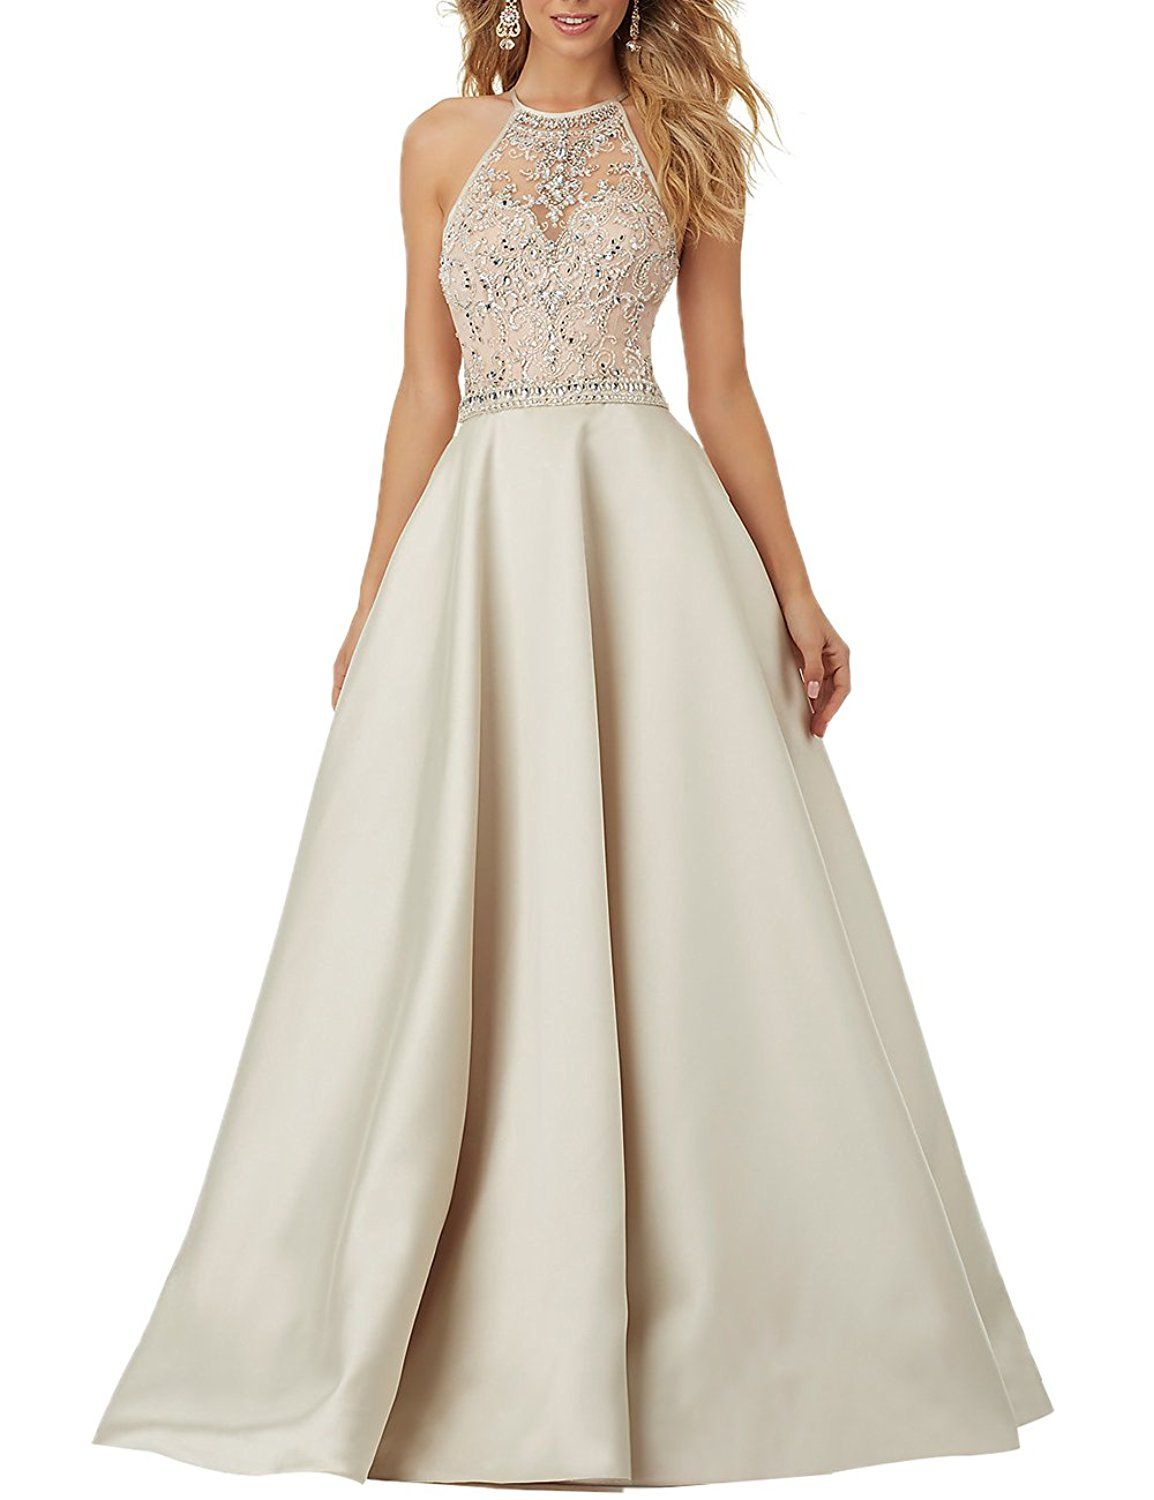 Firose Women s Trumpet Halter Ball Gowns Sparkling A Line Prom Dresses      More info could be found at the image url. (This is an affiliate link)   ... 6a66b829f5